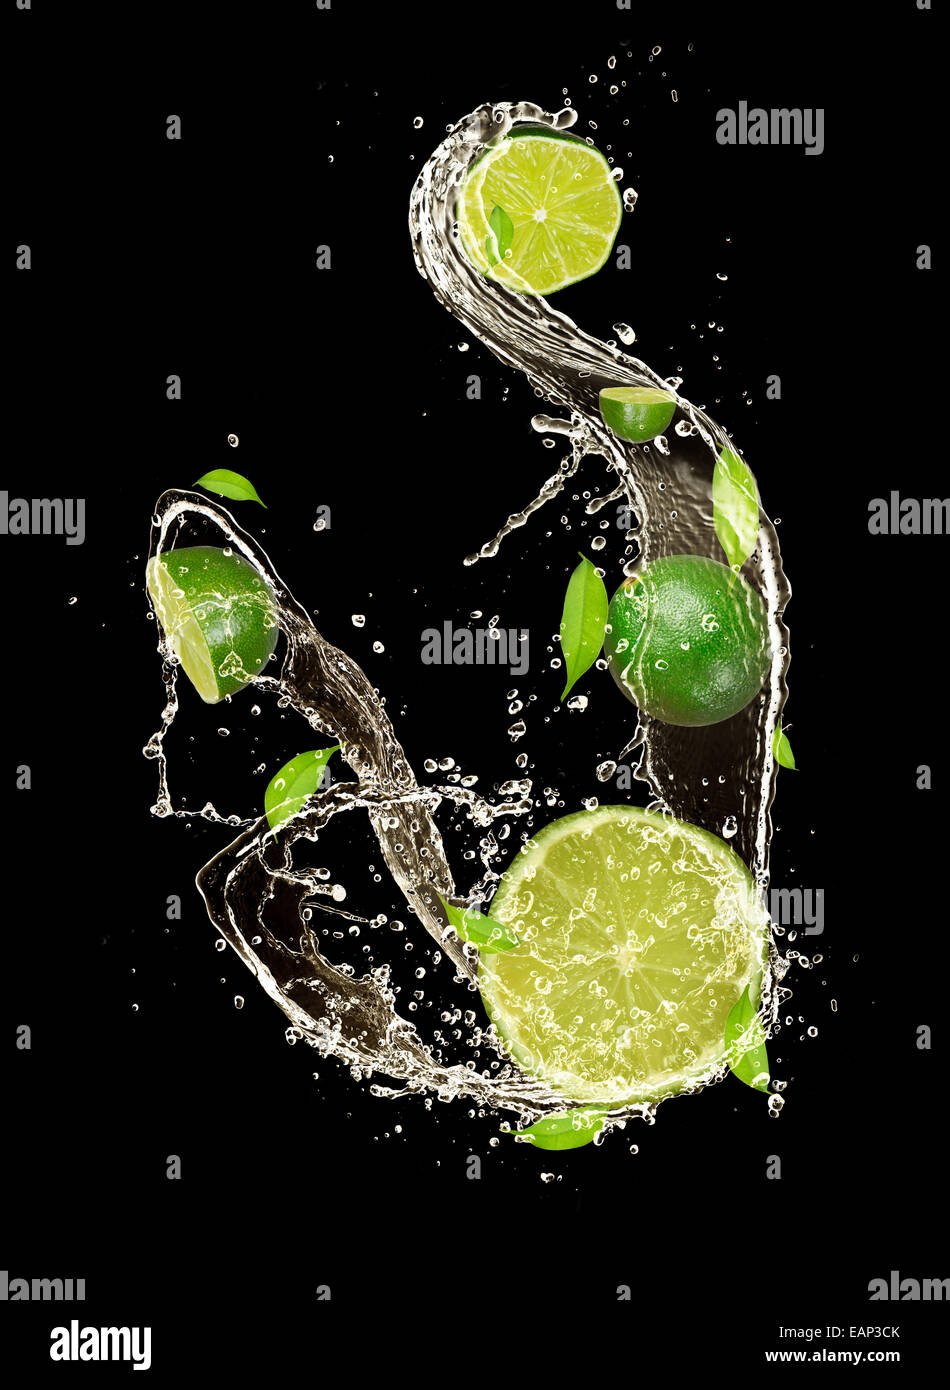 Limes in water splash, isolated on black background - Stock Image